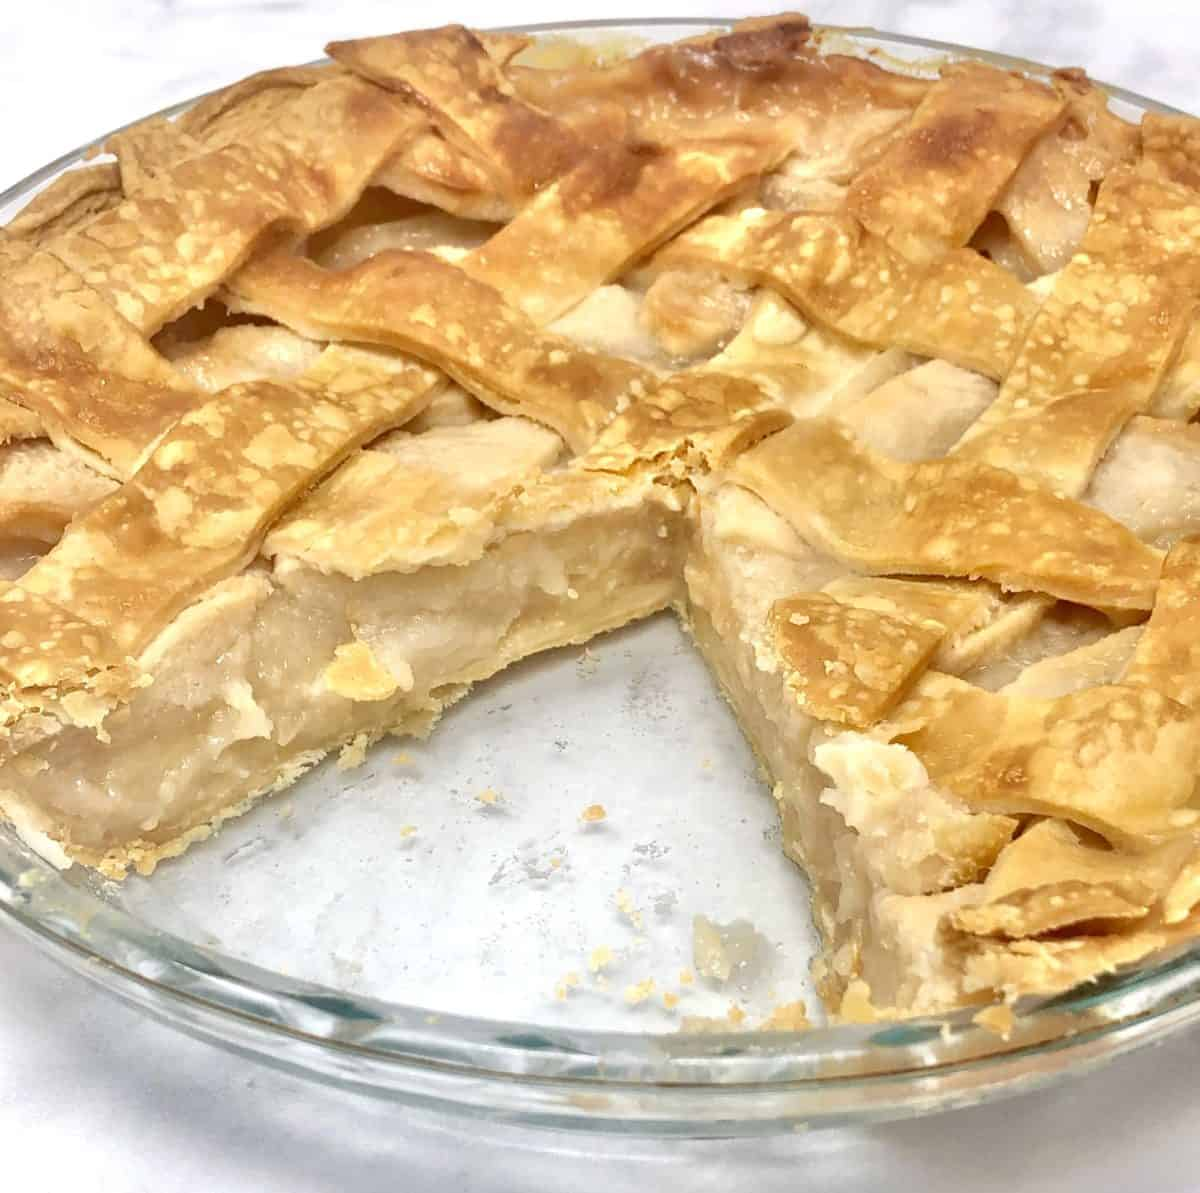 A homemade apple pie with a slice missing from it.